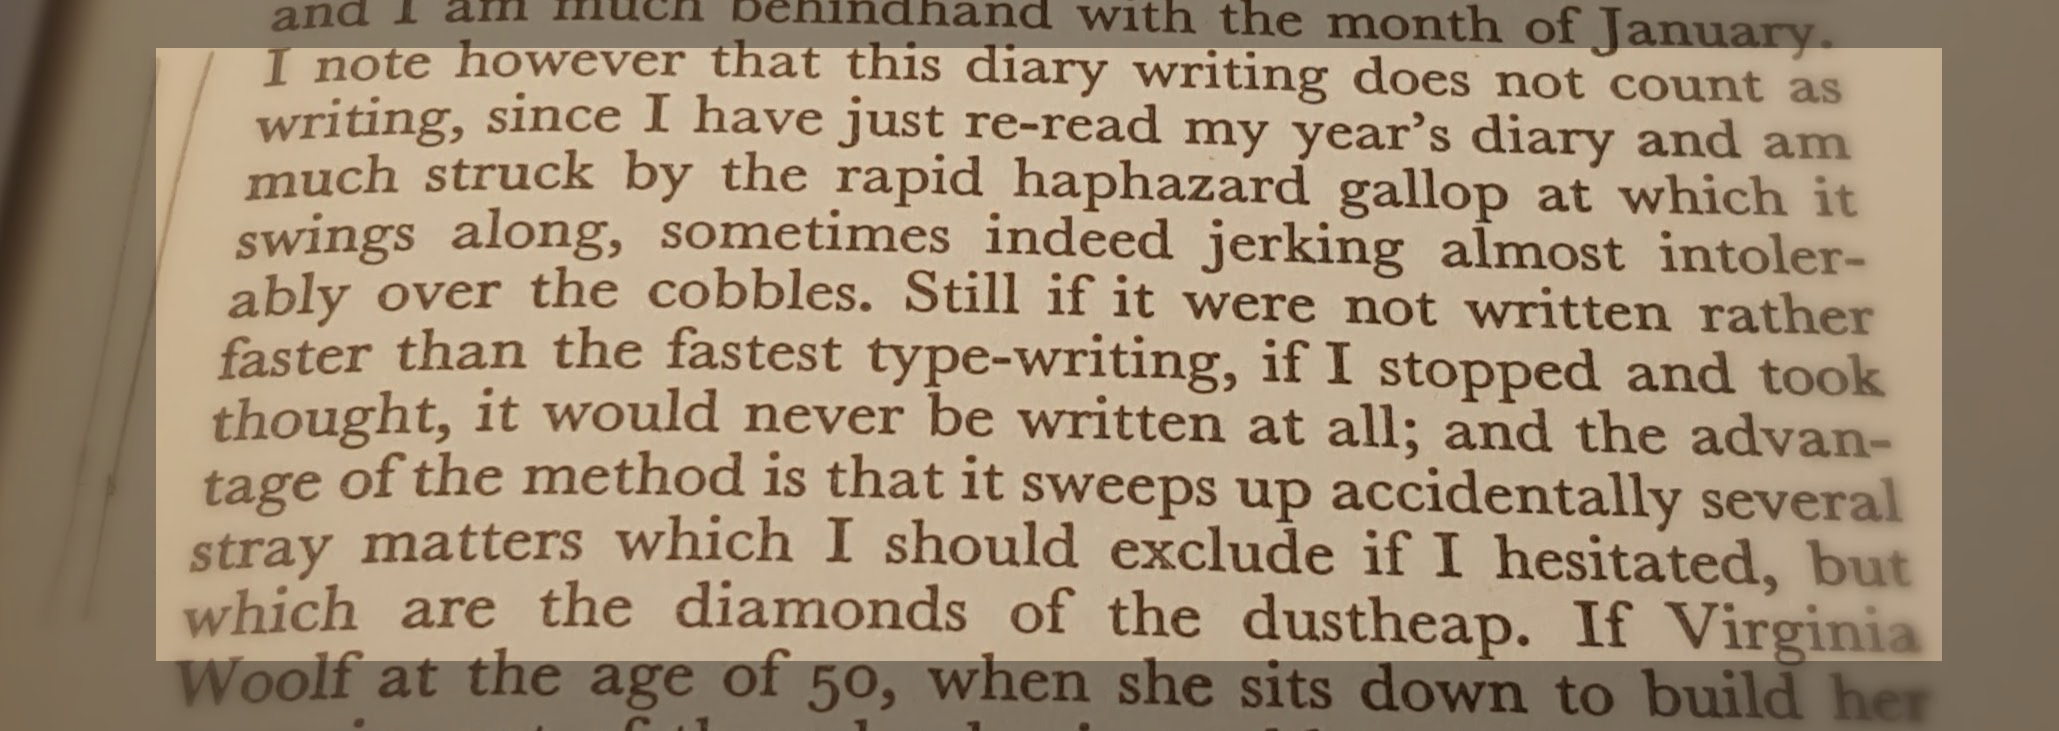 entry from V Woolf's 'A Writer's Diary'